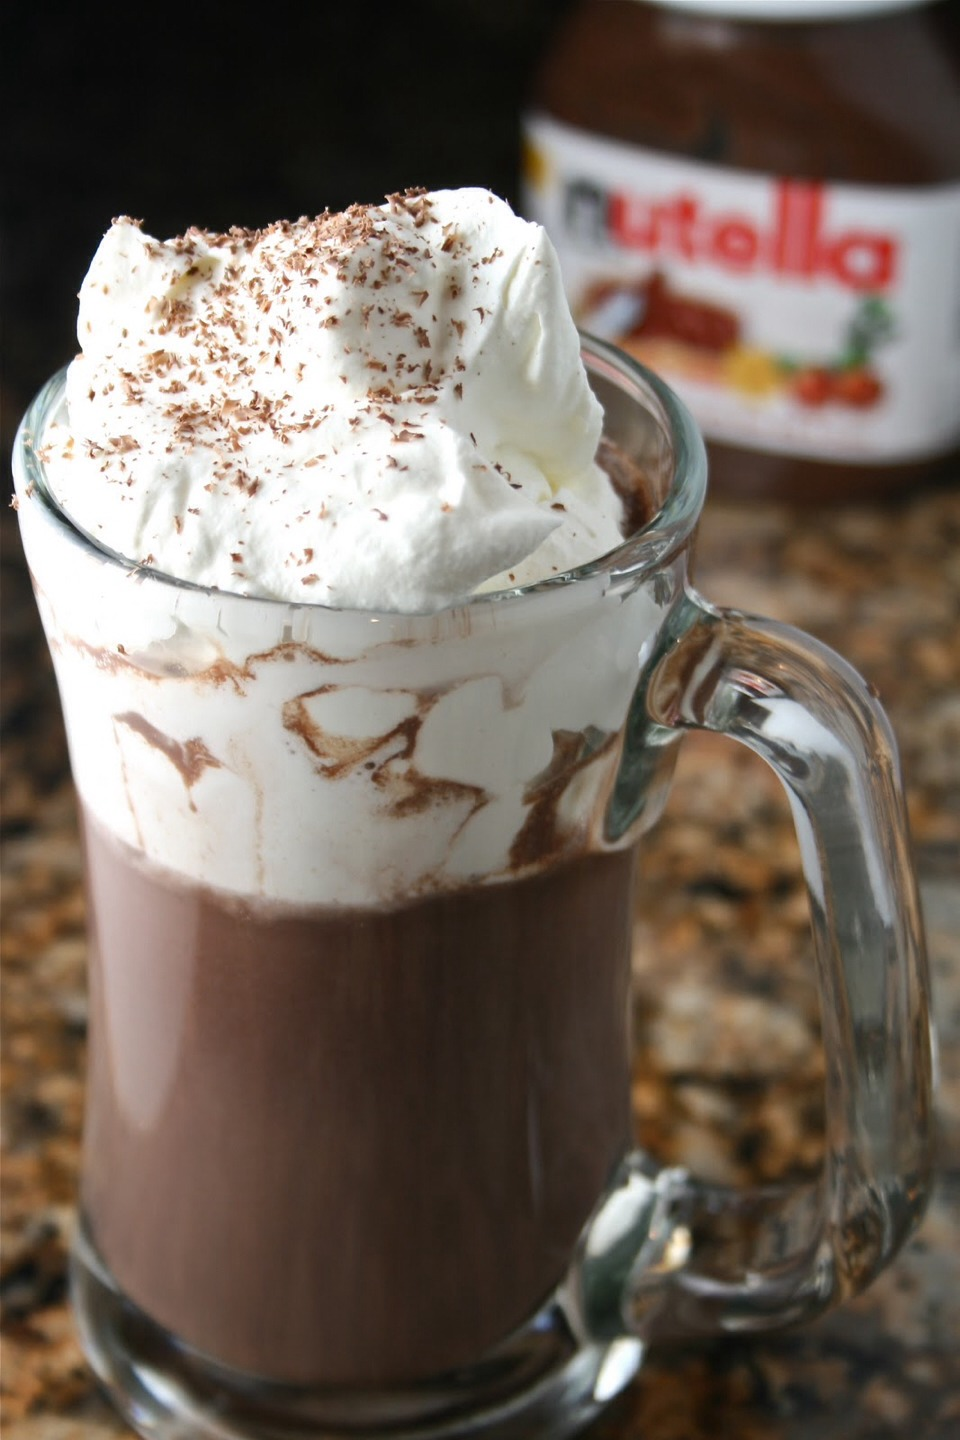 Mix Nutella with milk. Put in the microwave for four minutes. After two minutes has passed by take it out, stir it then put it back in for the other two minutes. (Make you add in 1 spoonful (round about) because when I did it, it was sweet!:)